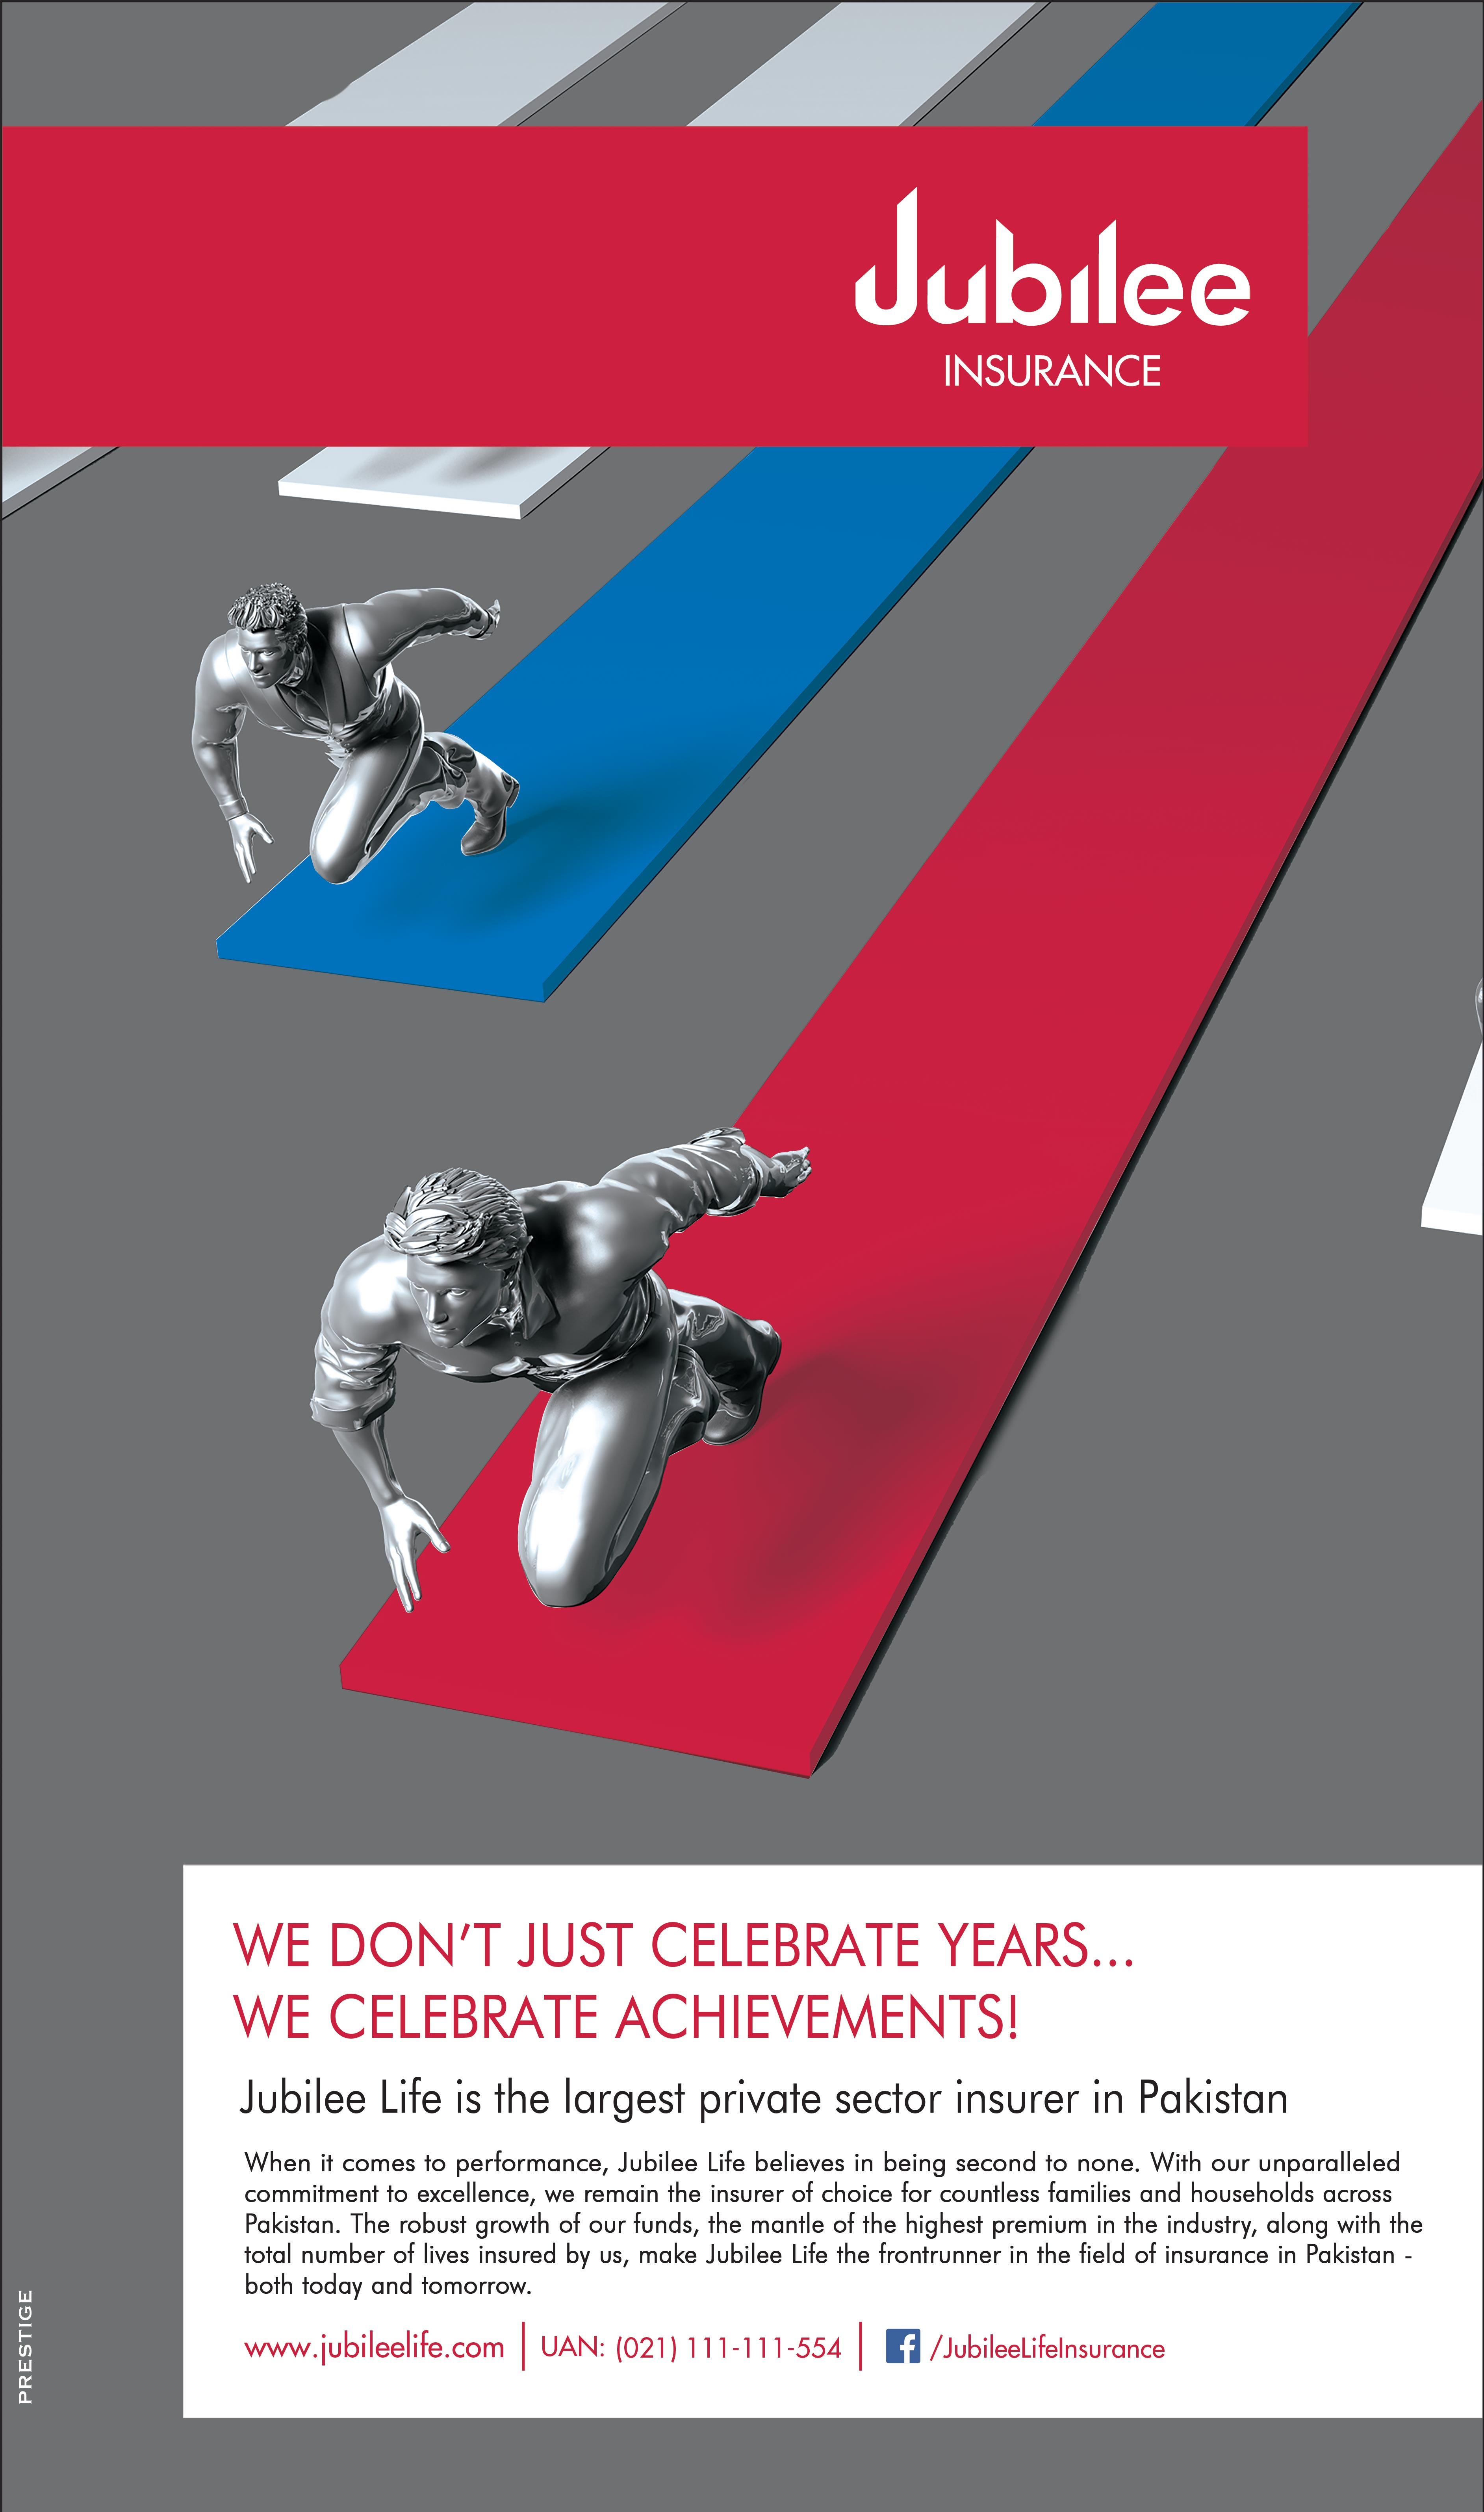 Print Ad Campaigns | Jubilee Life